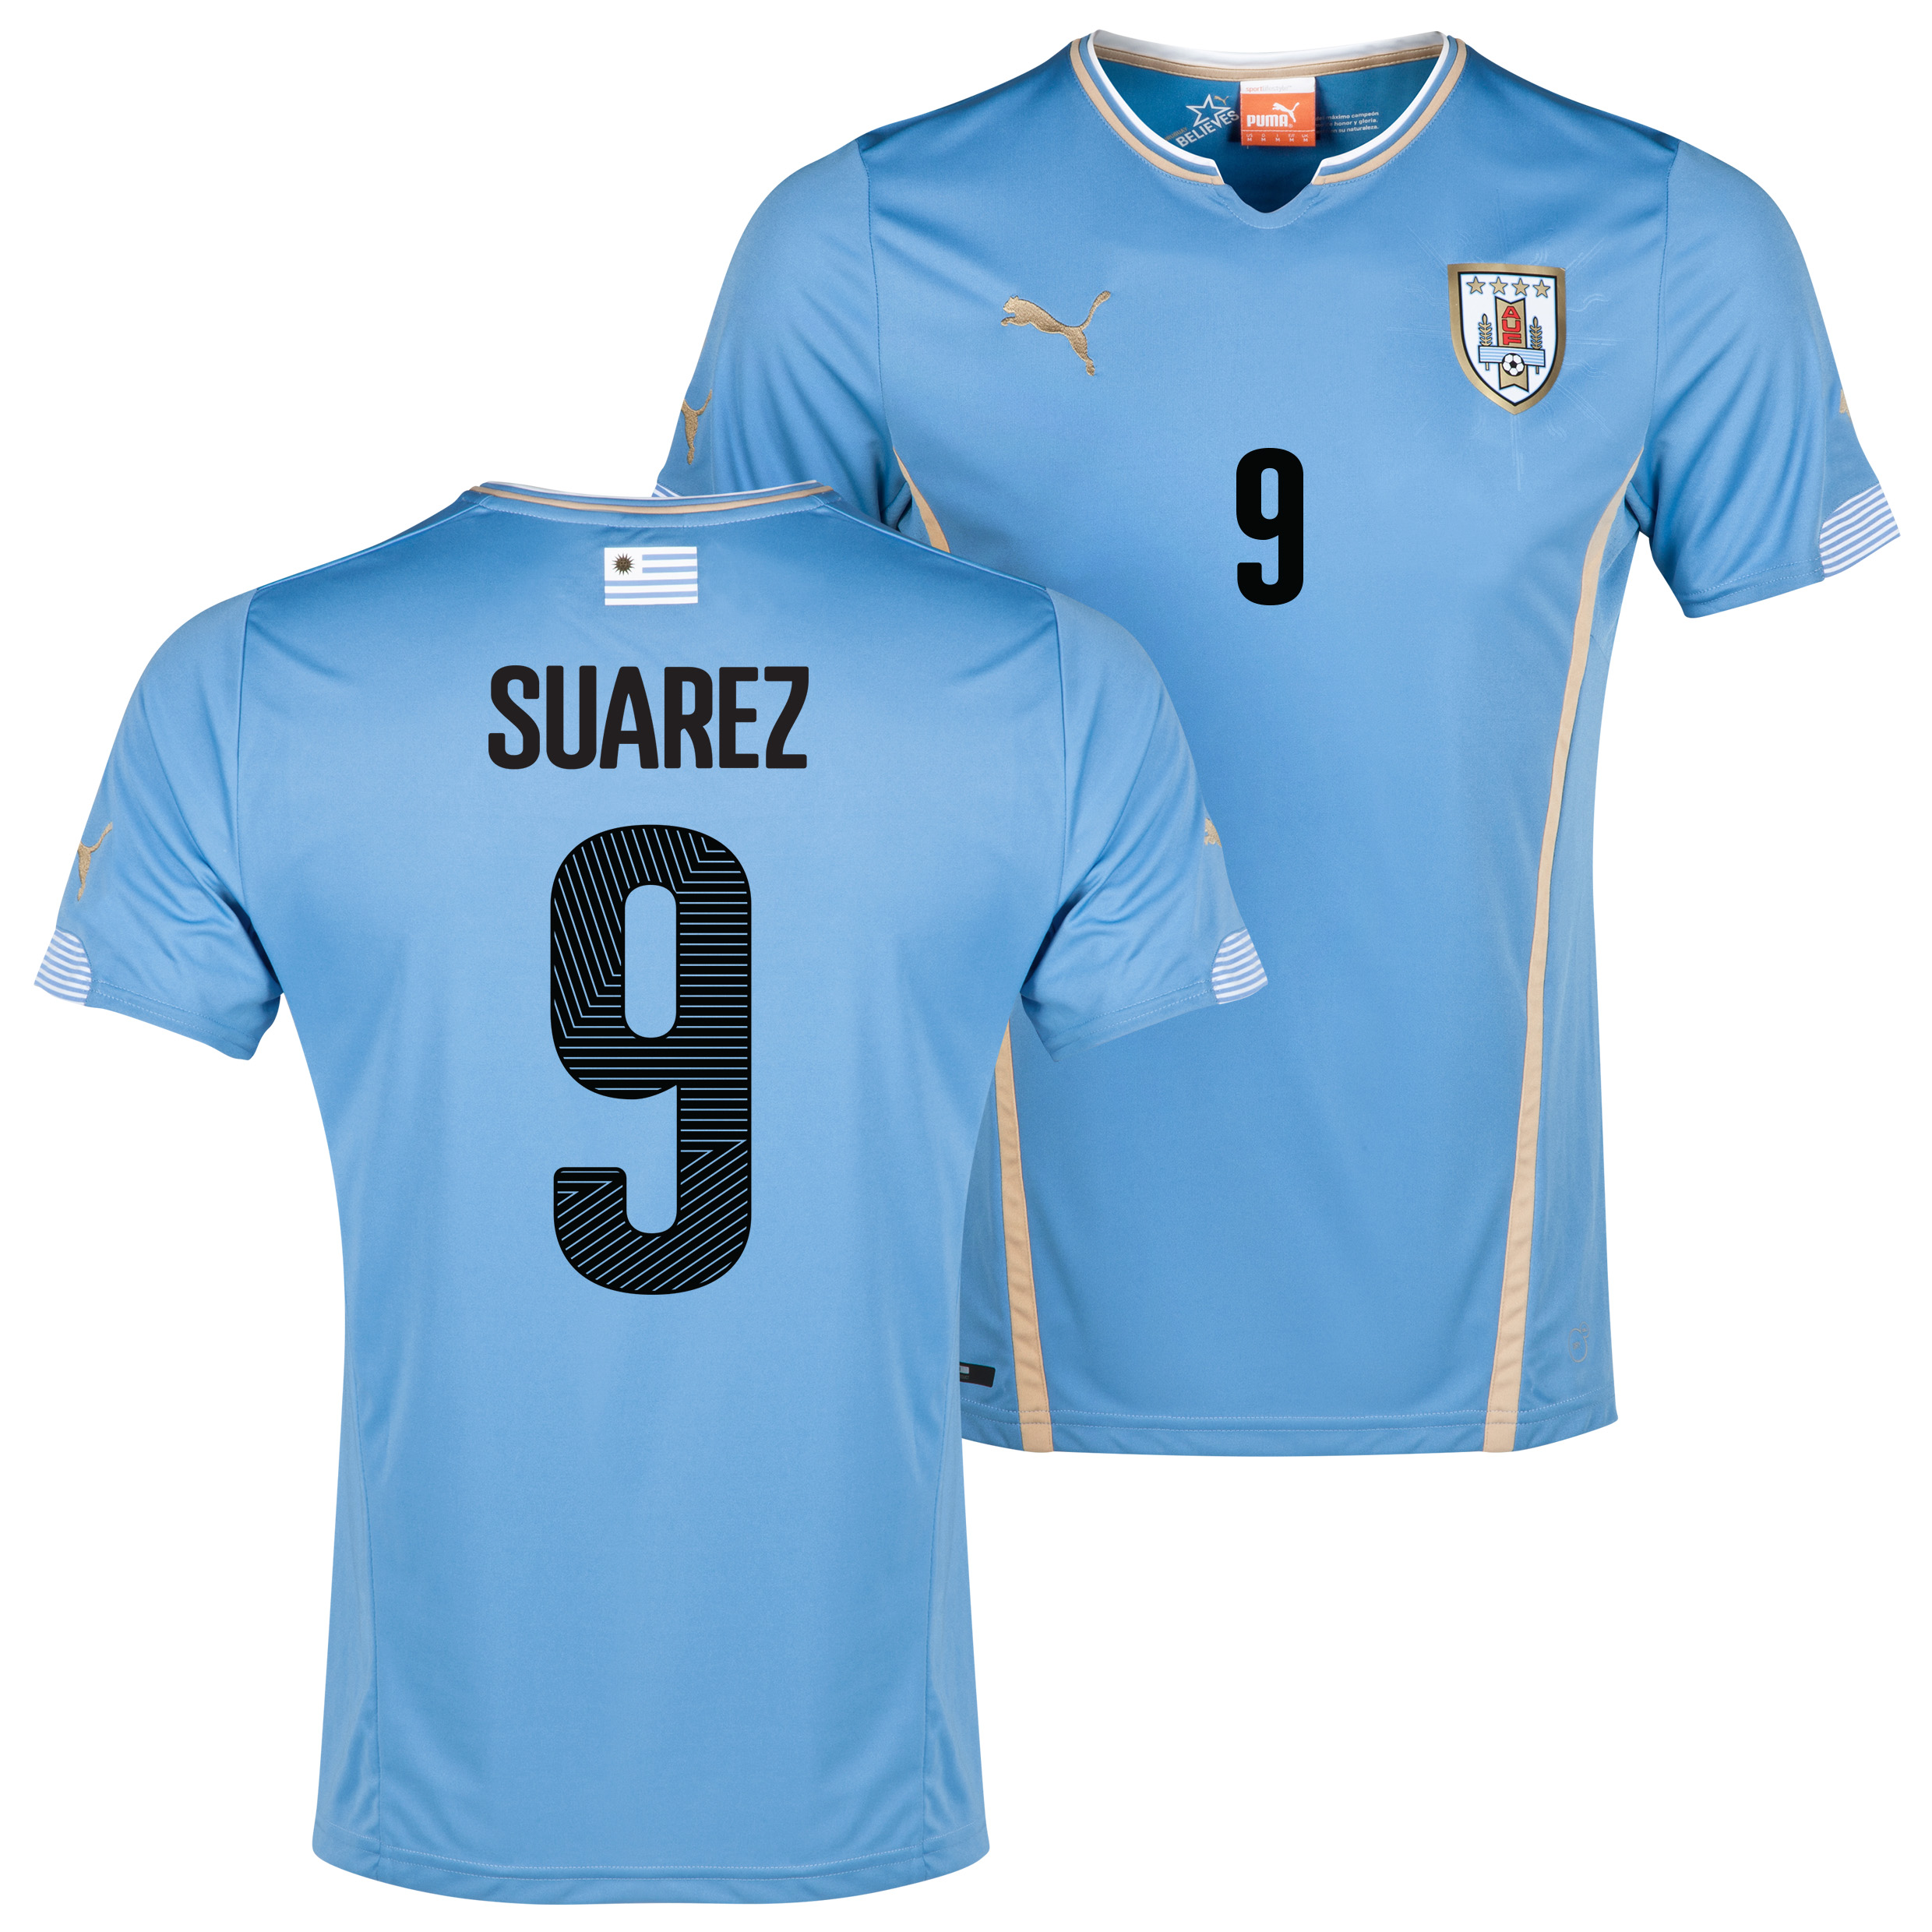 Uruguay Home Shirt 2013/14 with Suarez 9 printing